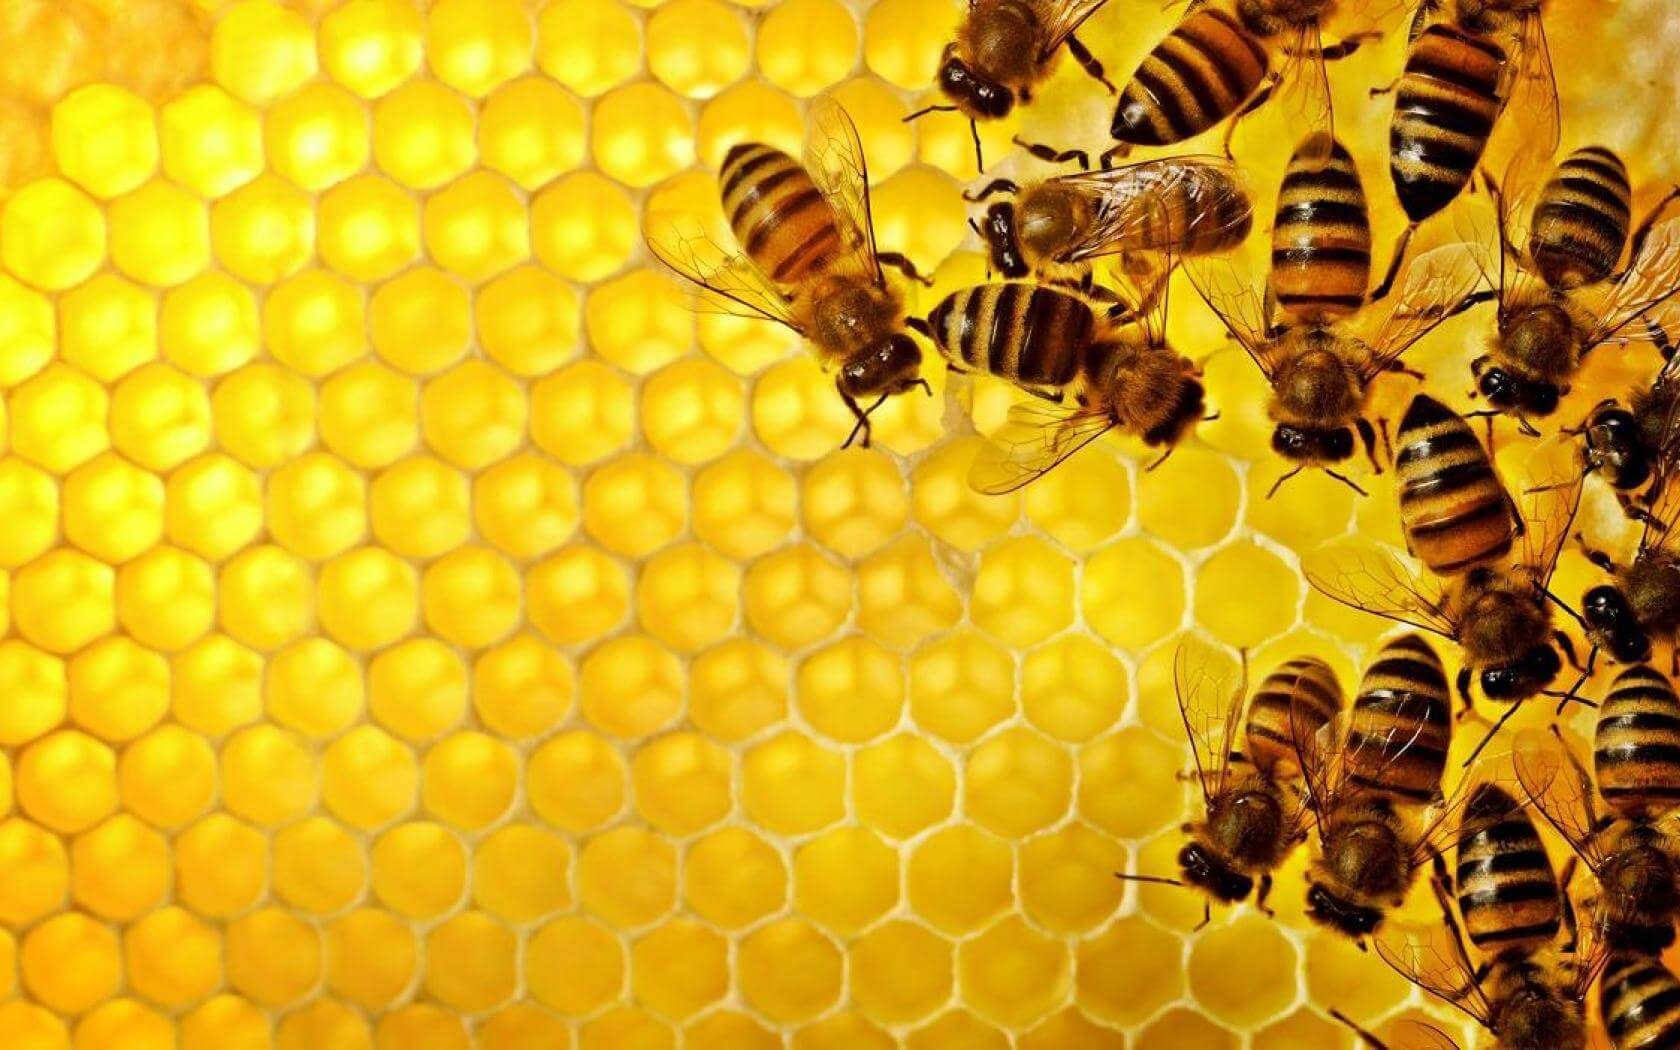 Bees On Hive HD Wallpaper   Byherbs 1680x1050